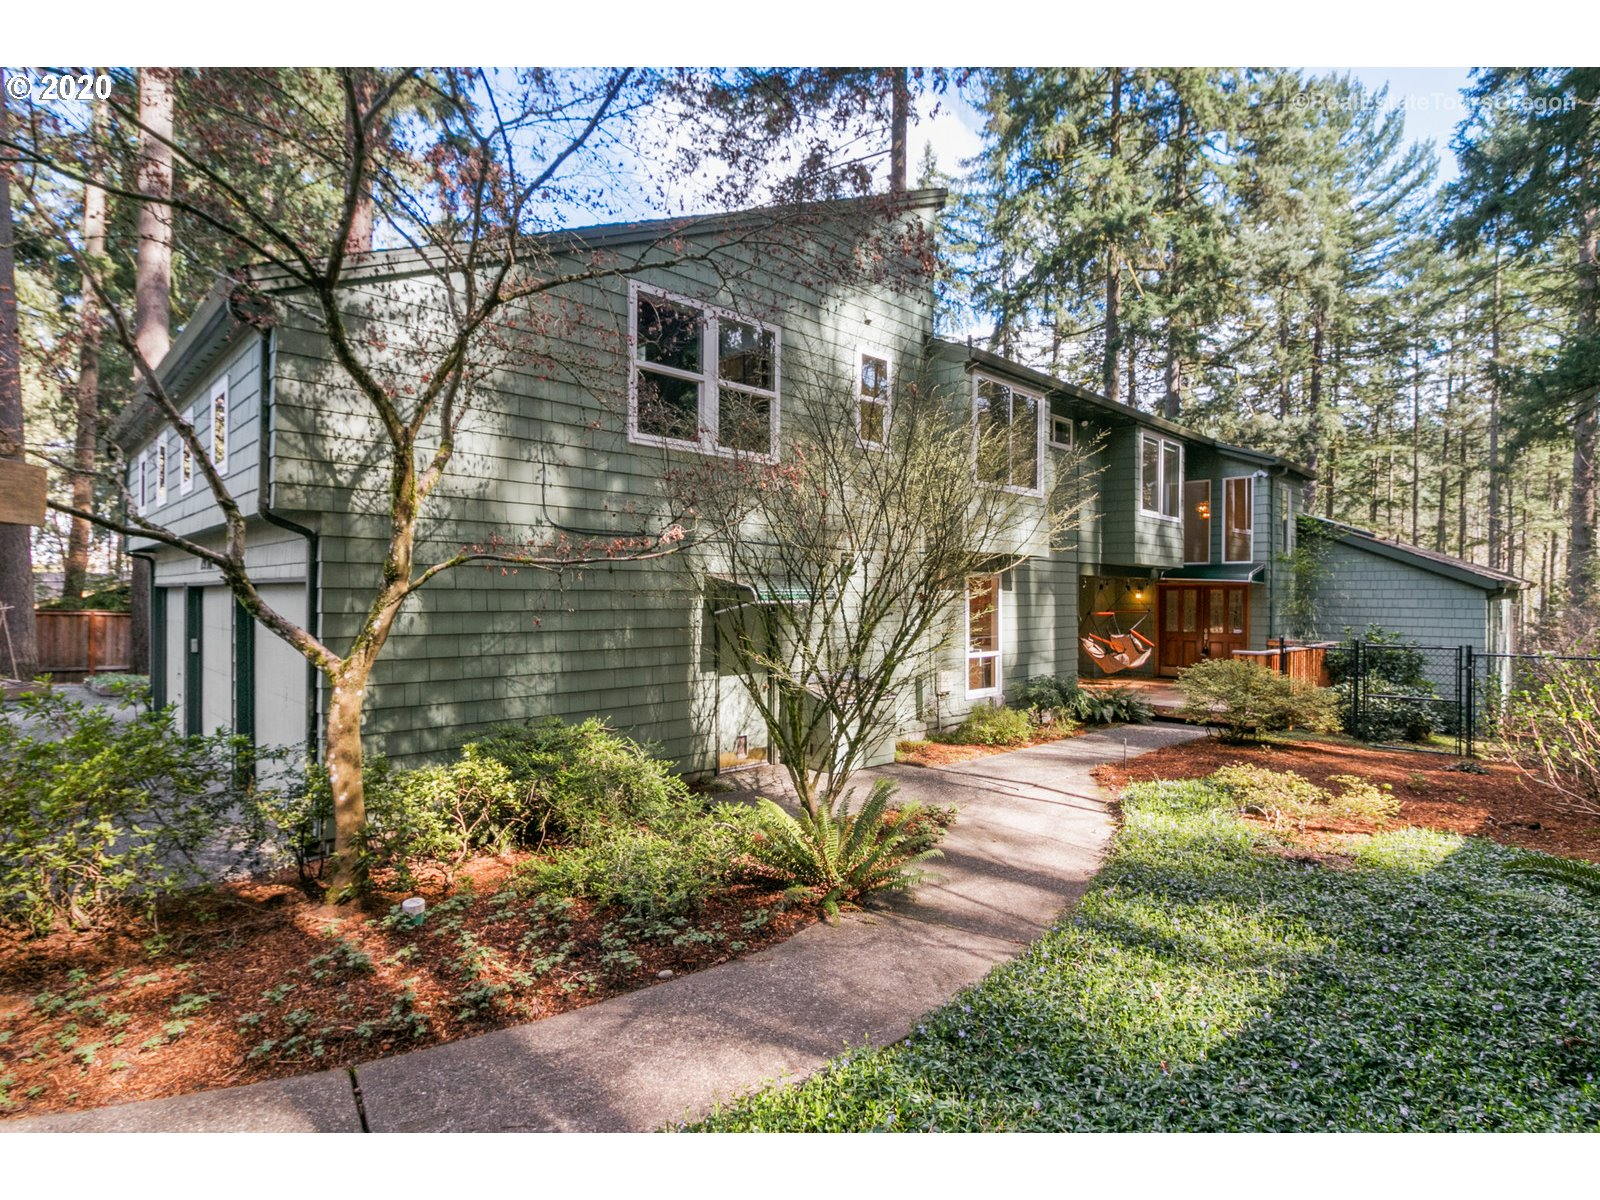 Spacious Custom Remodel 4262 sq ft 4 bedrm/4bth home on .44 acres w/high ceilings, open beams, gorgeous hardwood  floors, 2 fireplaces and lots of light. Has Loft/ Den w/ Blt-Ins & Flex space for Studio w/Ext entrance. Adjacent to Hyland Forest Park trails and nature area on a quiet street, close  to Nike/Intel/EZ access to dwntn Portland. Lg living spaces w/ 2nd master suite on main, gourmet kitchen, deck w/ view,Auto-xfer generator and 3-car garage plus add'l parking. A Must See!